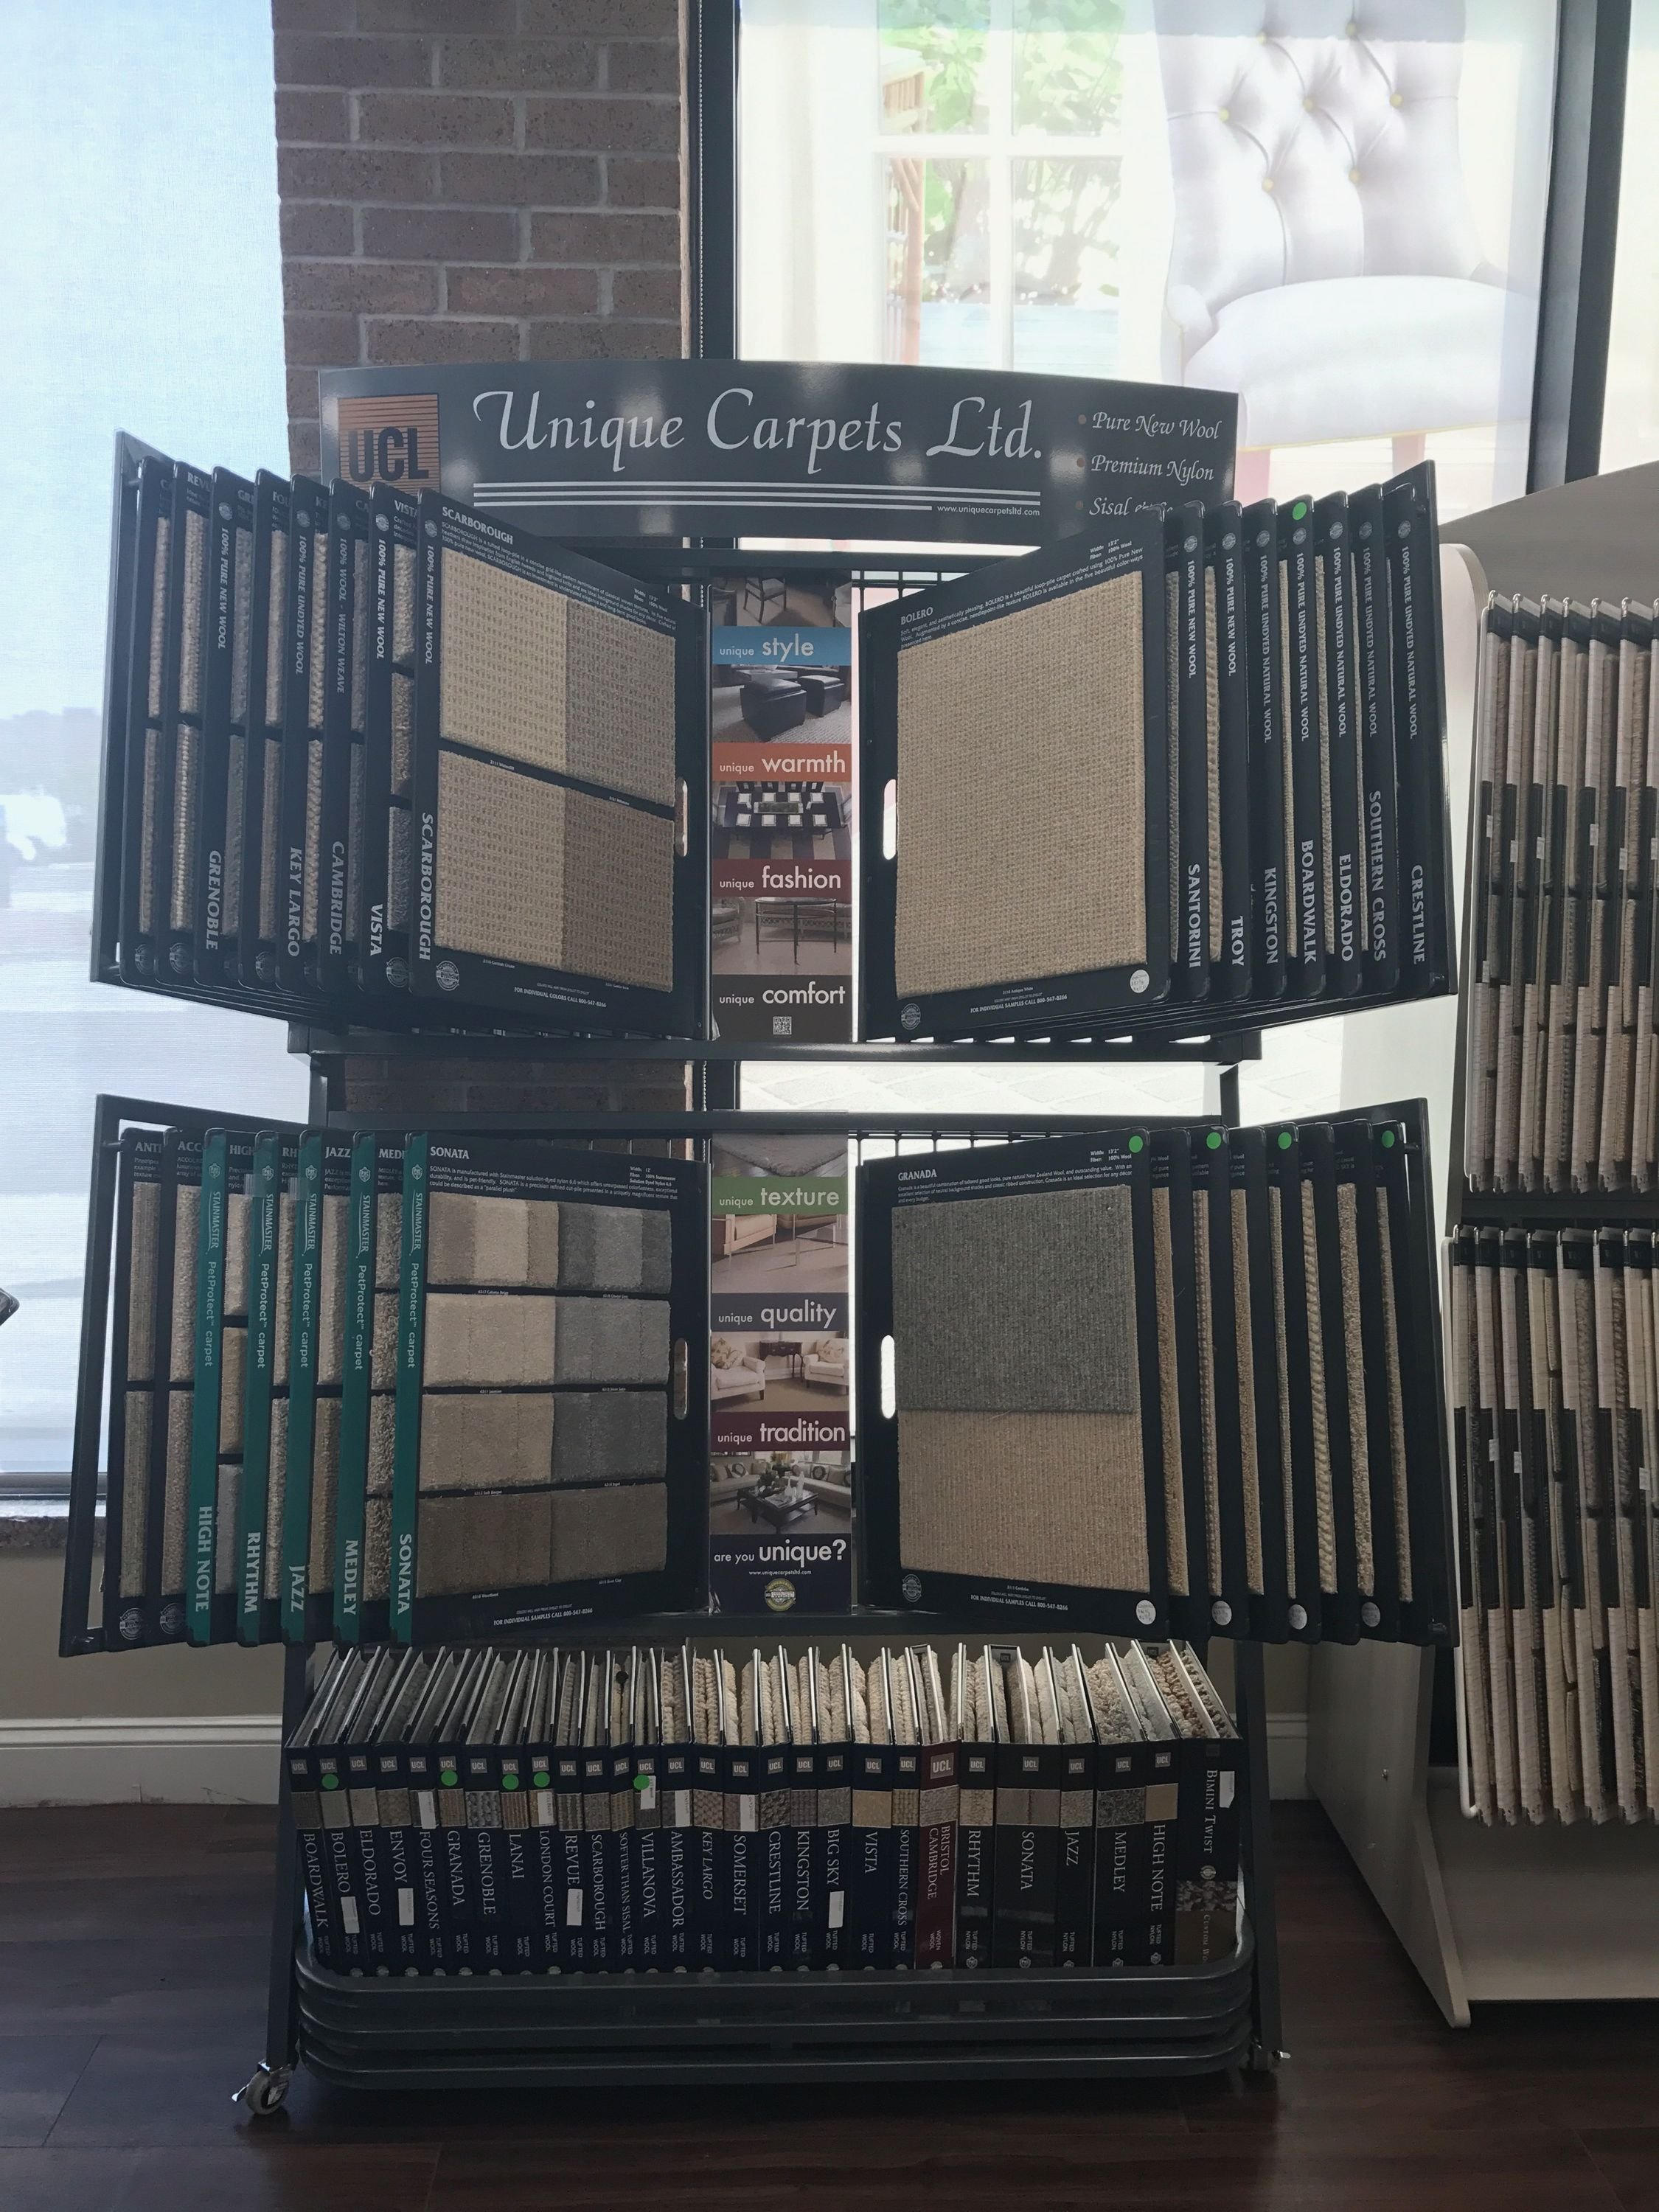 Great Options For Our Wool Customers In This Unique Carpets Display Woodside Carpet Square Feet